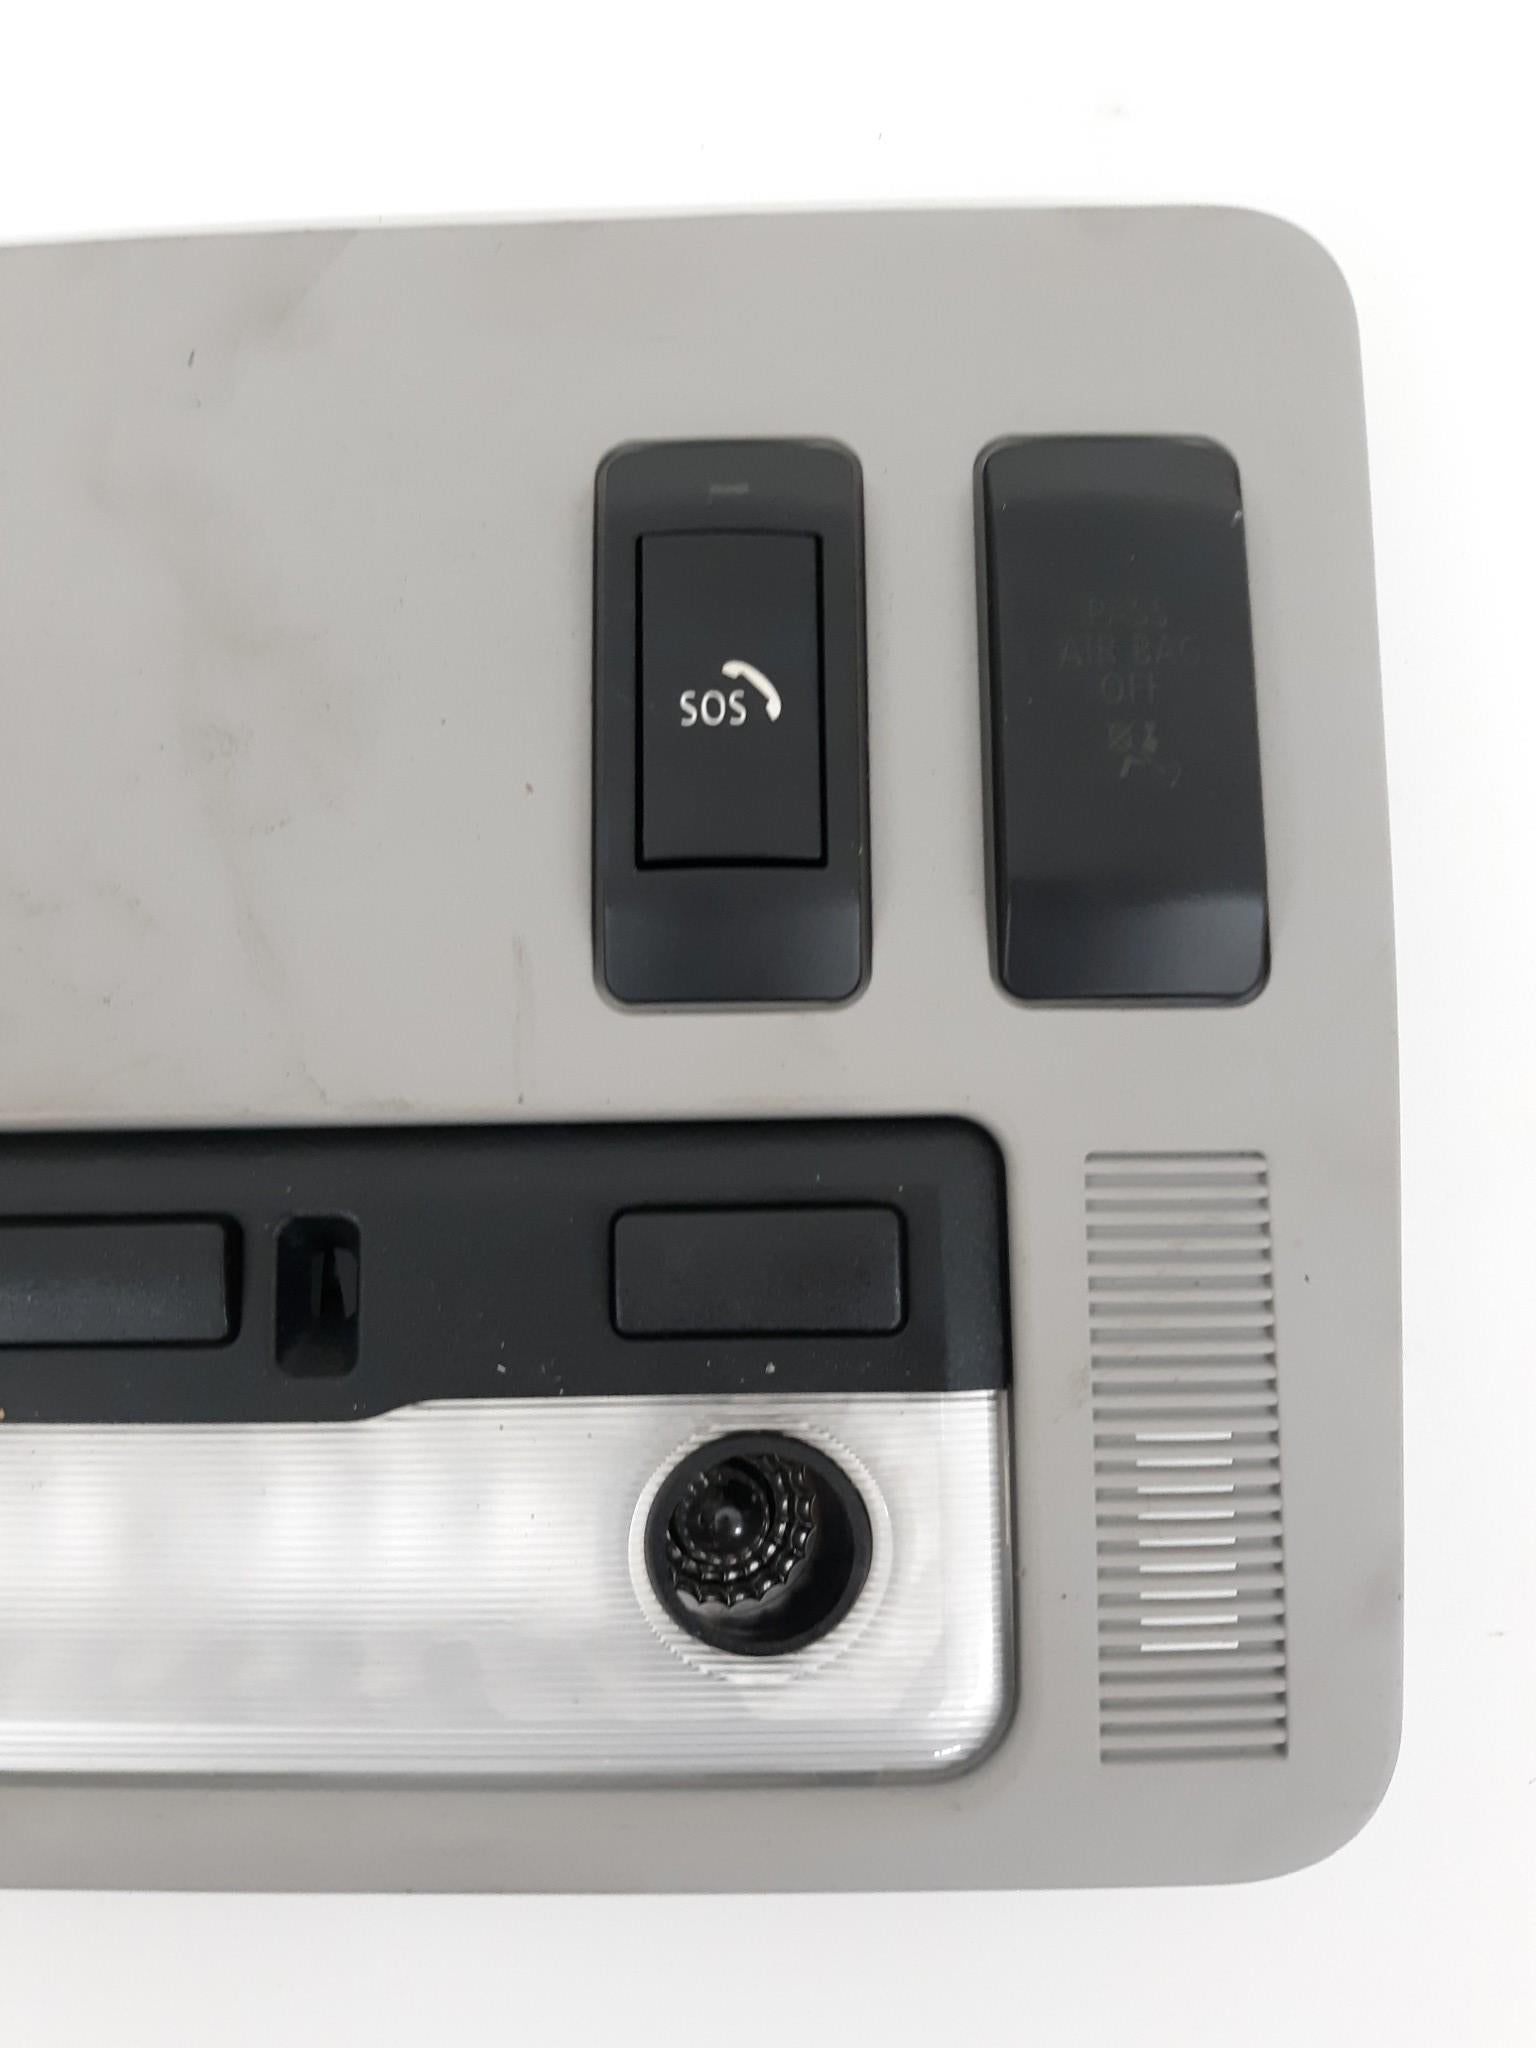 2004-2007 BMW 645Ci 650i FRONT INTERIOR DOME LIGHT SUNROOF SWITCH 7062986 OEM - Click Receive Auto Parts